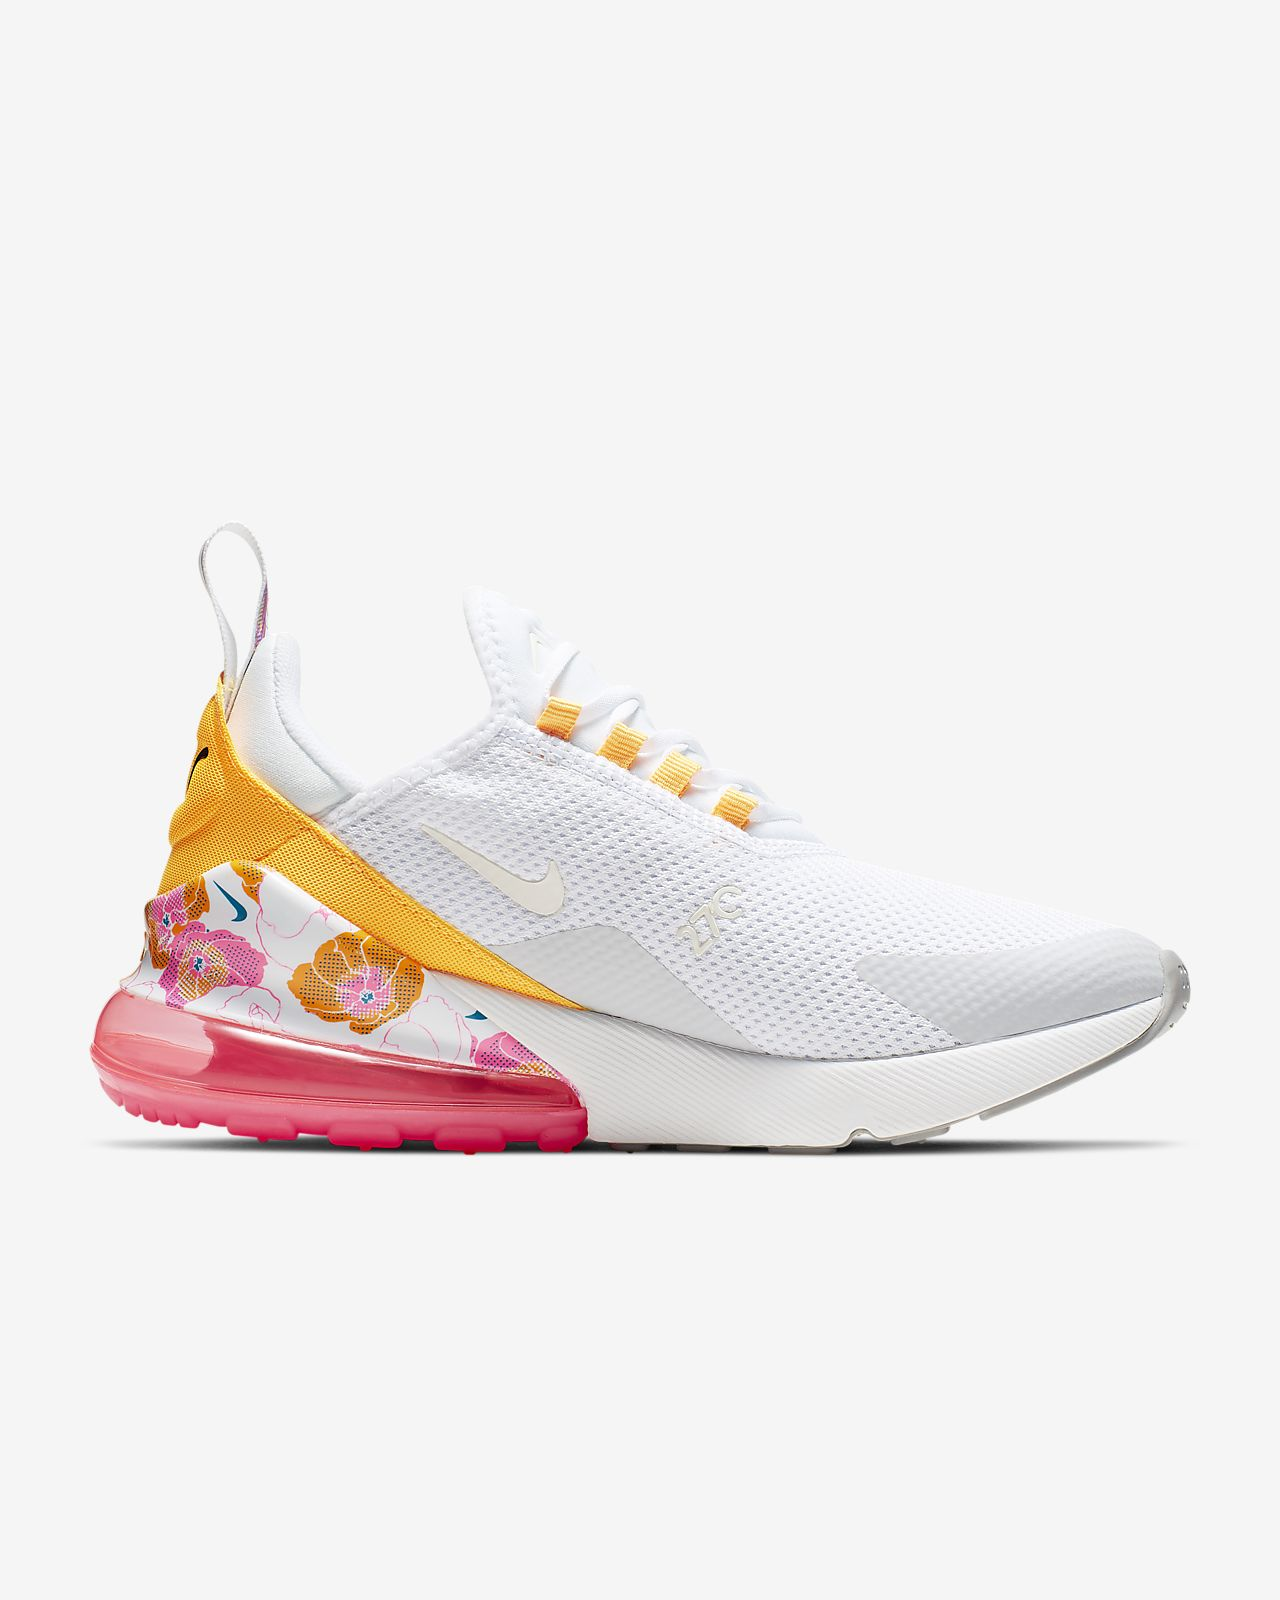 the latest 87a4b 8d5f9 ... Nike Air Max 270 SE Floral Women s Shoe